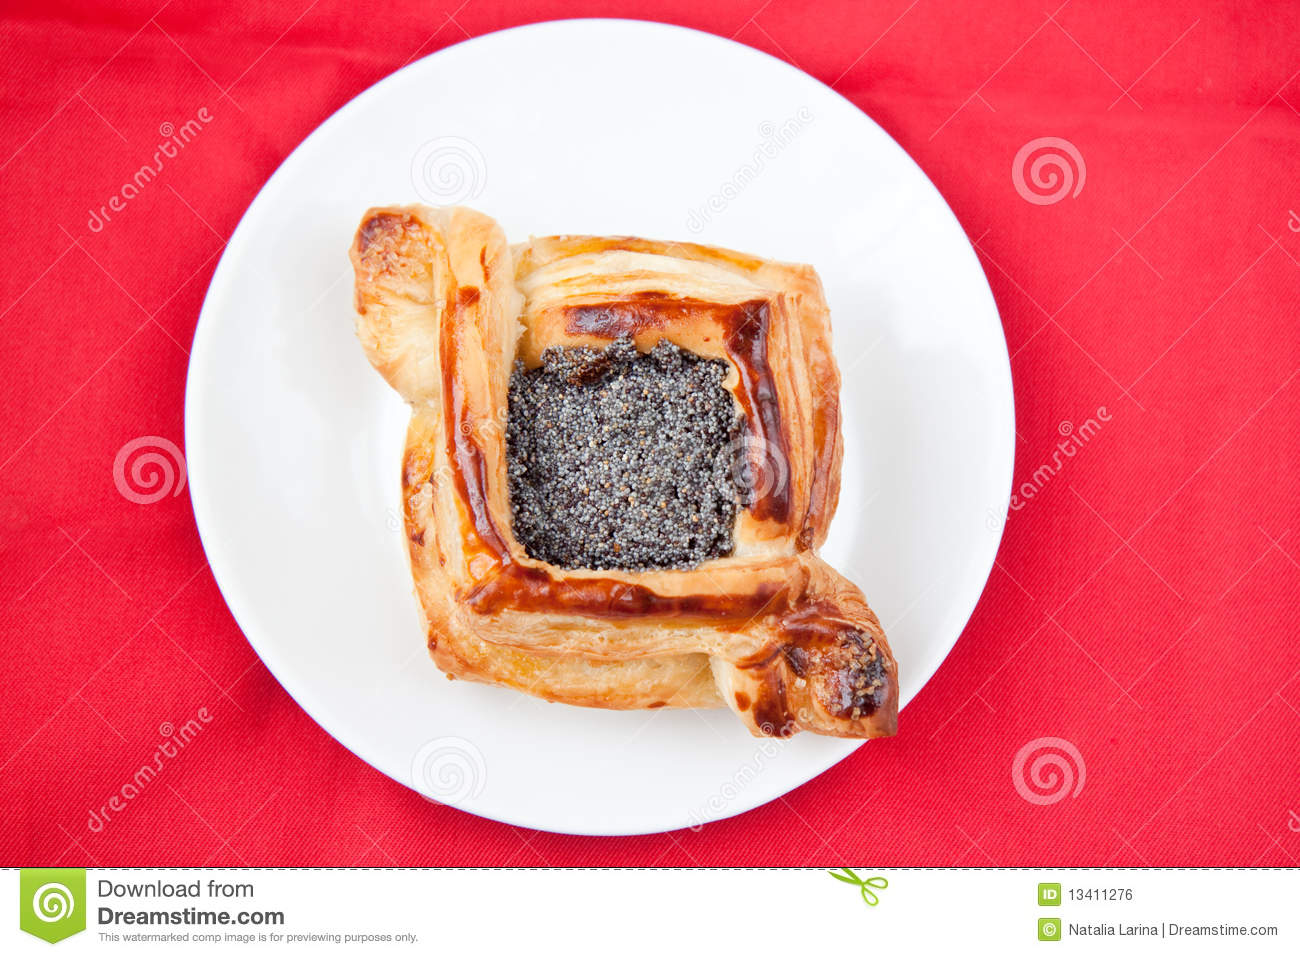 Flaky Croissant With Poppy Royalty Free Stock Image - Image: 13411276